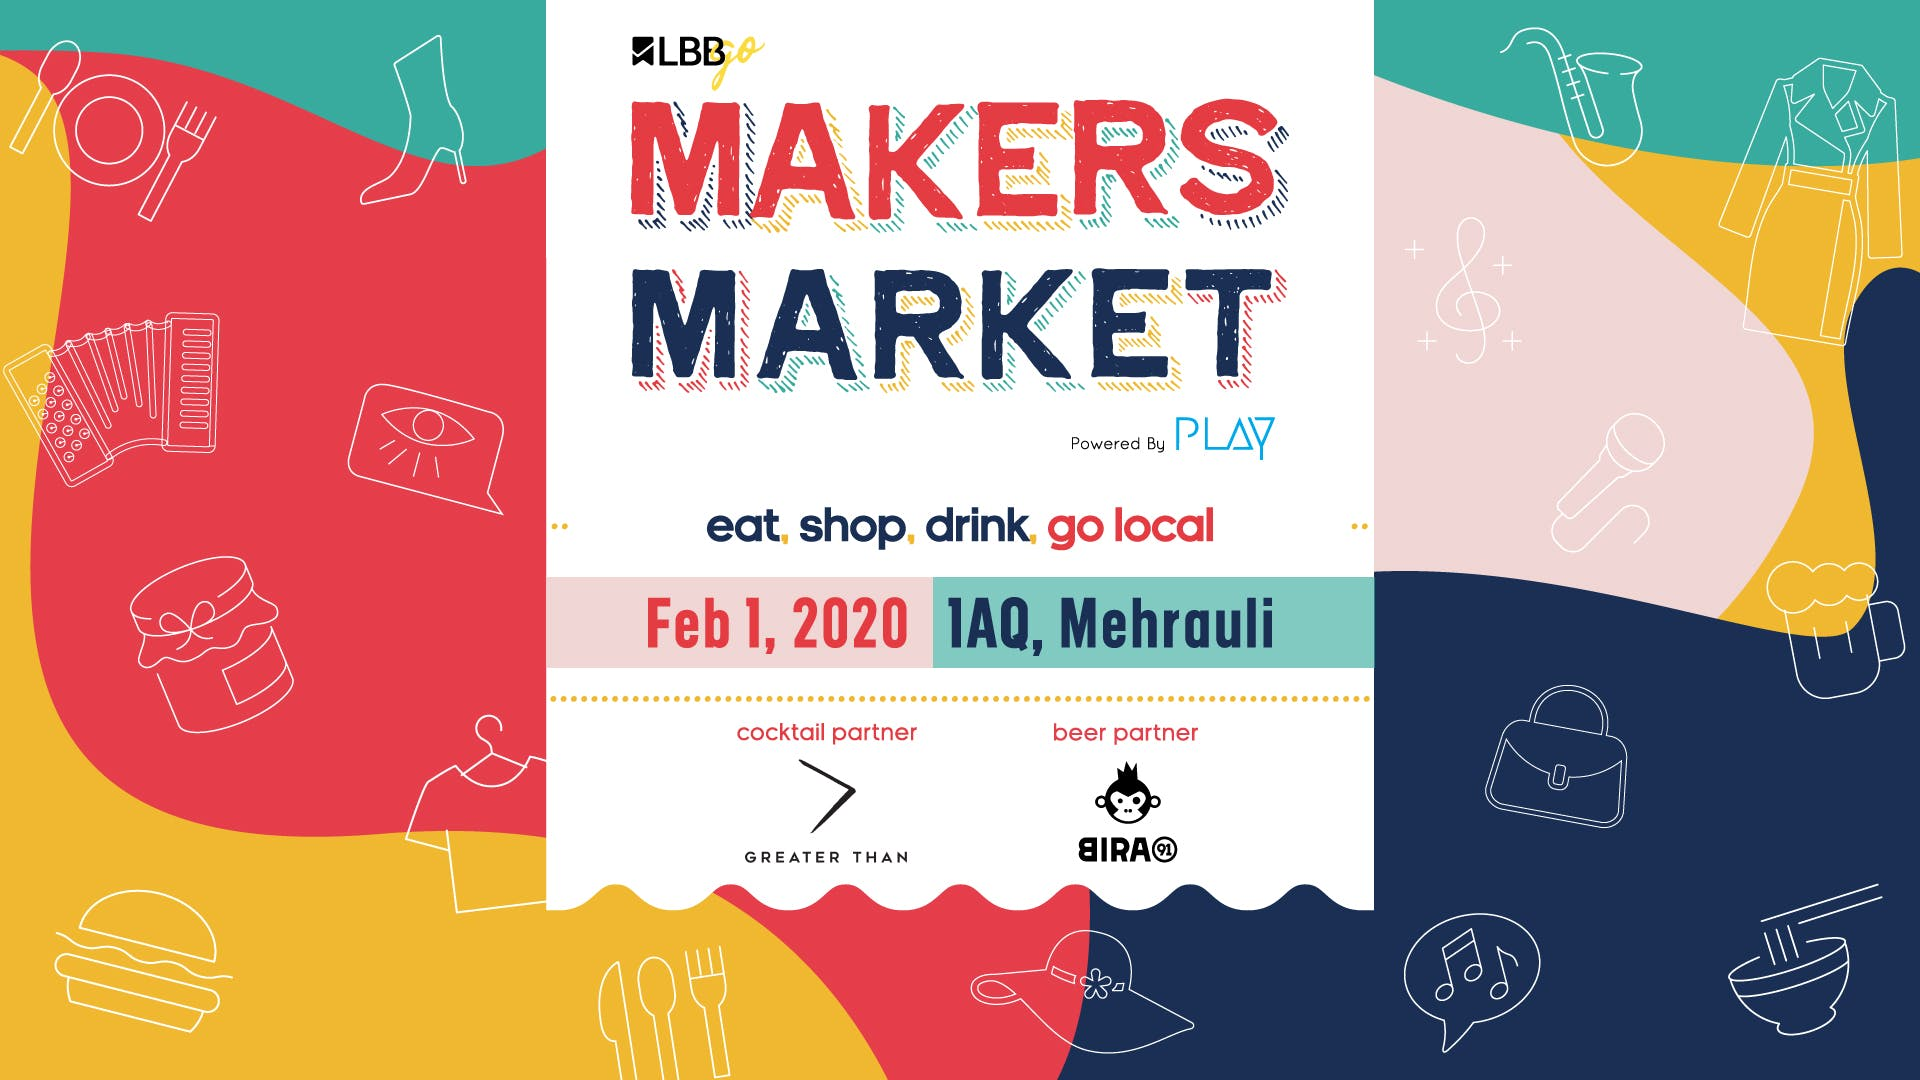 image - Shop, Eat, Drink From India's TOP Emerging Brands At LBB's Makers Market!